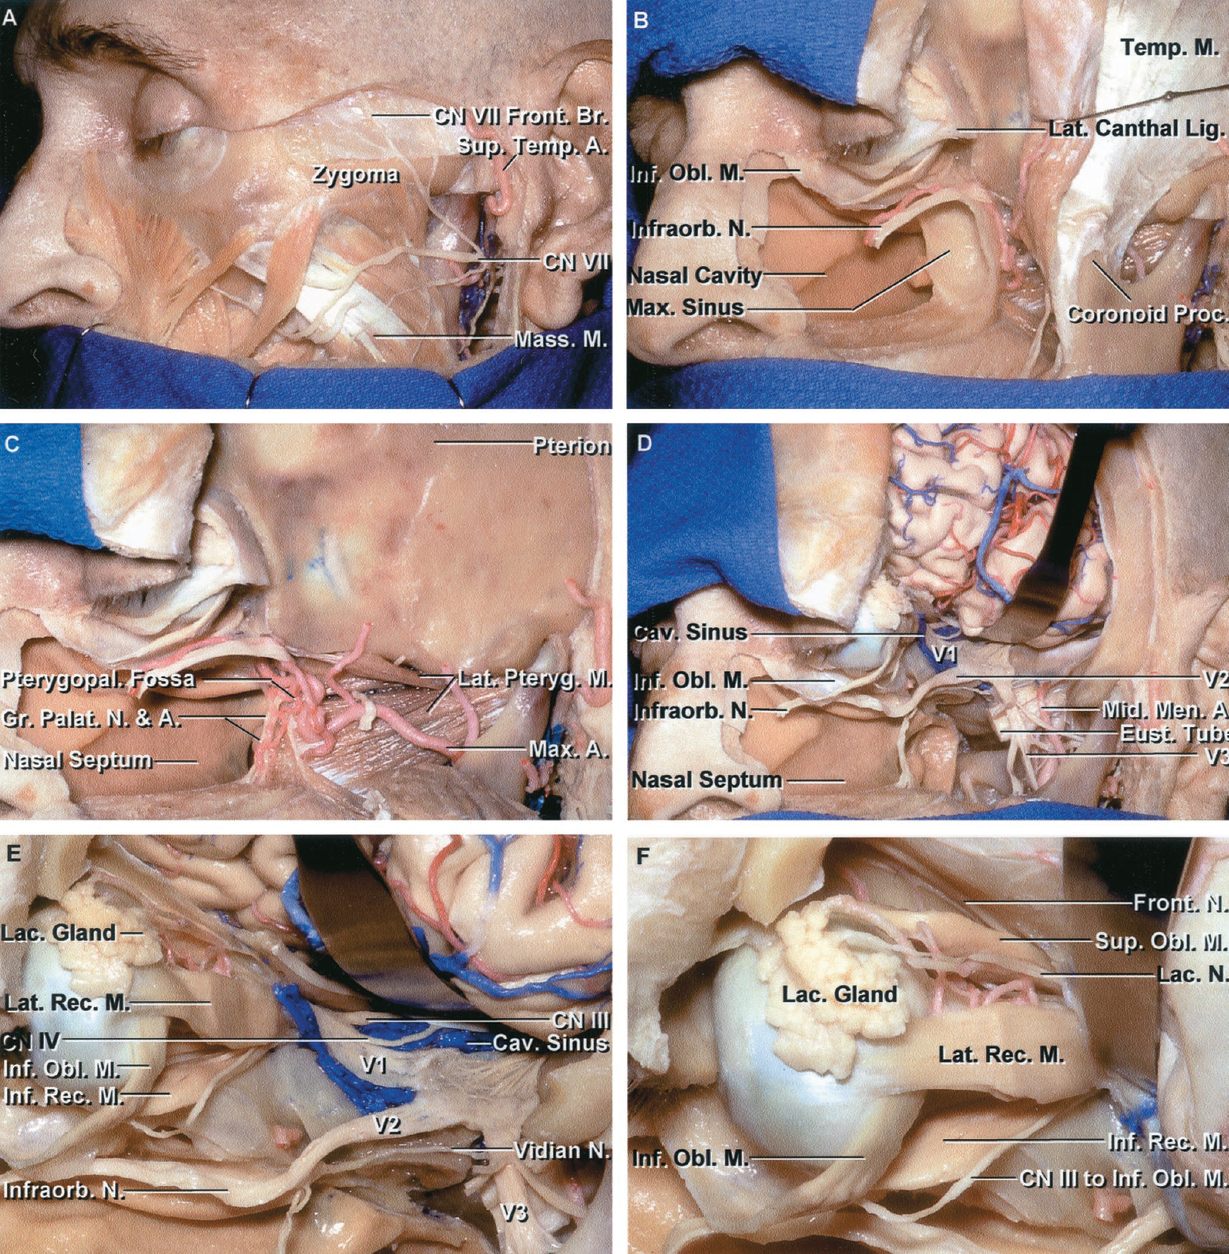 FIGURE 6.16. Upper subtotal maxillotomy. Exposure obtained with mobilization of the upper part of the maxilla. A, this approach uses paranasal, lower conjunctival, transverse temporal, and preauricular incisions. In the usual approach, the cheek flap is elevated as a single layer using subperiosteal dissection. In this dissection, the layers of the cheek flap were dissected separately to illustrate the structures in the flap. The facial muscles and branches of the facial nerve are exposed. The parotid gland has been removed. The frontal branch of the facial nerve crosses the middle portion of the zygomatic arch. If facial nerve branches are transected in the approach, they are tagged in preparation for reapproximation at closure. B, a hemicoronal scalp incision and reflection of the temporalis muscle exposes the lateral orbital rim. The cheek flap containing the facial muscles, branches of the facial nerve, parotid gland, and masseter muscle have been reflected inferiorly to the level of the maxillary attachment of the buccinator muscle. The orbital, maxillary, and zygomatic osteotomies have been completed and the lower half of the orbital rim, the anterior, medial, and lateral walls of the maxillary sinus, and the zygomatic arch have been reflected. The lower horizontal cut, located at the Le Fort I level, extends above the apical dental roots and hard palate and along the inferior nasal meatus medially. The maxillotomy, at this stage, does not include the posterior maxillary wall or cross the greater and lesser palatine canals. The lateral nasal wall was included with the maxillotomy to expose the nasal cavity. The infraorbital nerve, which crosses the orbital floor, may be preserved for reconstruction. C, the posterior wall of the maxillary sinus has been removed to expose the pterygopalatine fossa and the palatine nerves and arteries. The base of the coronoid process was divided, and the temporalis reflected downward to expose the lateral pterygoid muscle and maxillary artery in the infratemporal fossa. D, a frontotemporal bone flap has been elevated, the dura covering the frontal and temporal lobes and lateral wall of the cavernous sinus have been opened, and the temporal lobe has been elevated. The pterygoid muscles, the pterygoid process and plates, and the part of the middle fossa floor formed by the greater sphenoid wing have been removed to expose the nerves passing through the foramina rotundum and ovale. The eustachian tube is exposed behind the mandibular nerve and the middle meningeal artery. E, magnified view of the cavernous sinus, superior orbital fissure, and orbit. The oculomotor, trochlear, and ophthalmic nerves course through the lateral wall of the cavernous sinus. The ophthalmic nerve sends its branches along the upper part of the orbit. The maxillary nerve exits the foramen rotundum and passes through the pterygopalatine fossa, where it gives rise to the infraorbital nerve that courses along the floor of the orbit. The mandibular nerve passes through the foramen ovale and sends its branches through the infratemporal fossa. The vidian nerve passes forward in the vidian canal below the maxillary nerve to join the pterygopalatine ganglion in the pterygopalatine fossa. F, enlarged view of the orbital exposure. The lacrimal gland sits on the superolateral margin of the globe. The lacrimal nerve courses above the lateral rectus muscle. The inferior oblique muscle passes below the attachment of the inferior rectus muscle and upward between the globe and lateral rectus muscle to insert on the globe near the tendon of insertion of the superior oblique muscle. A., artery; Br., branch; Cav., cavernous; CN, cranial nerve; Eust., eustachian; Front., frontal; Gr., greater; Inf., inferior; Infraorb., infraorbital; Lac., lacrimal; Lat., lateral; Lig., ligament; M., muscle; Mass., masseter; Max., maxillary; Men., meningeal; Mid., middle; N., nerve; Obl., oblique; Palat., palatine; Proc., process; Pteryg., pterygoid; Pterygopal., pterygopalatine; Rec., rectus; Sup., superior; Temp., temporal, temporalis.